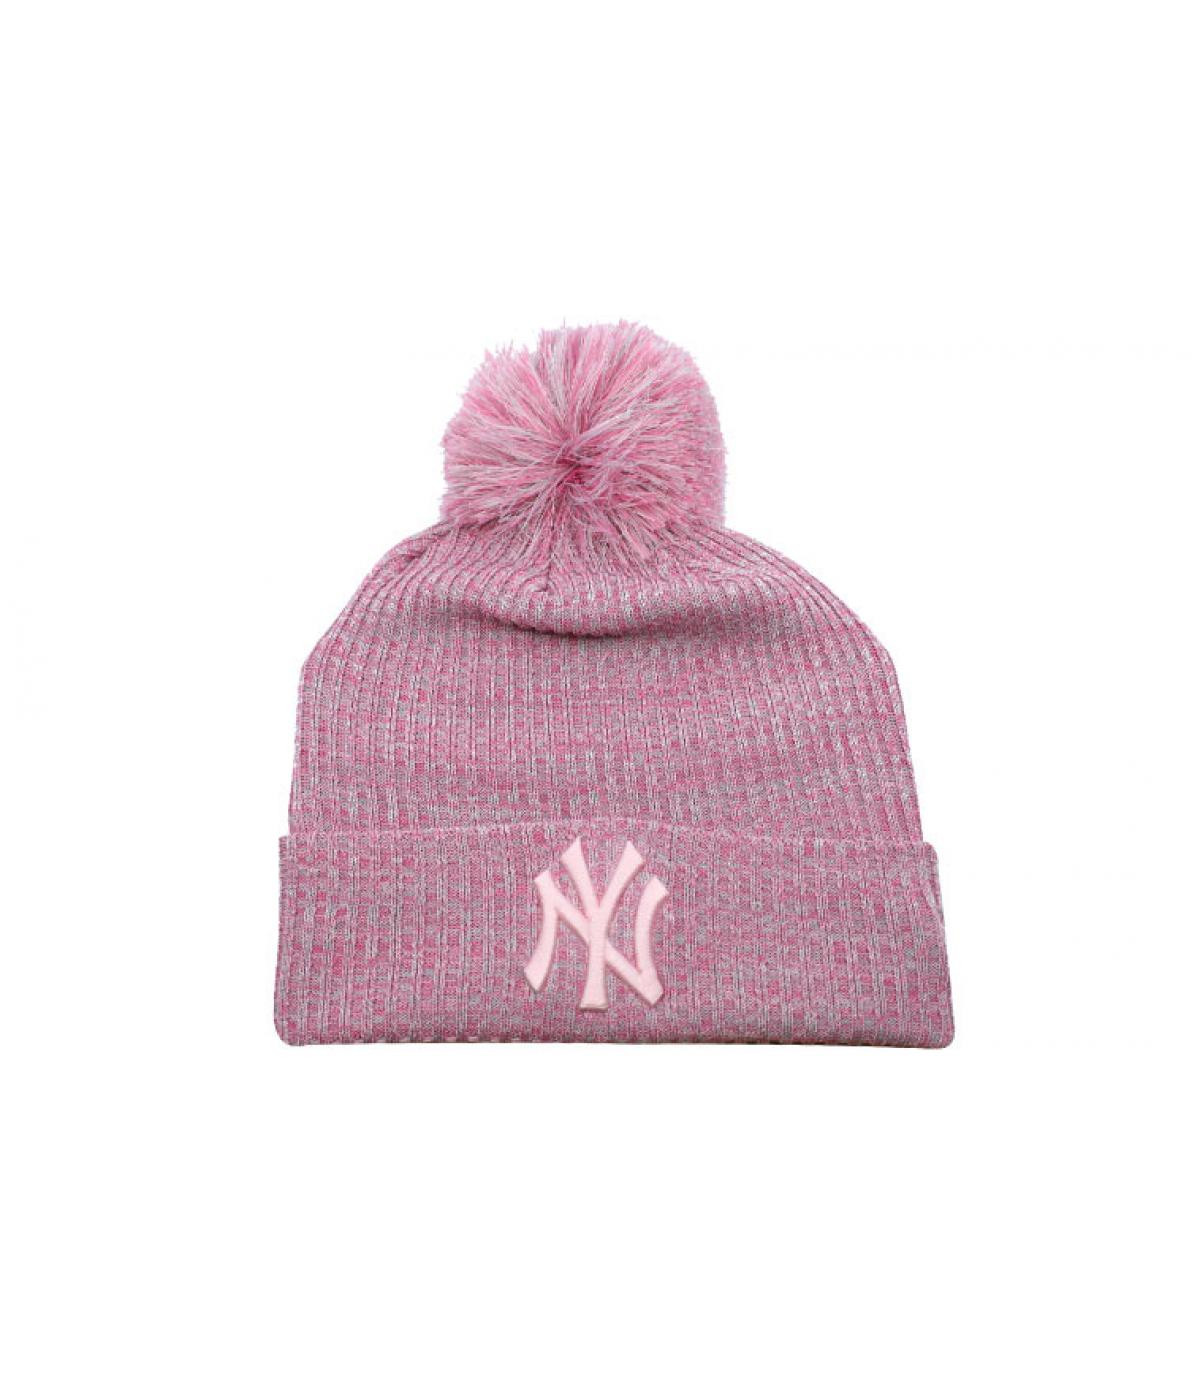 Détails Wmns NY Engineered Fit Knit pink - image 2